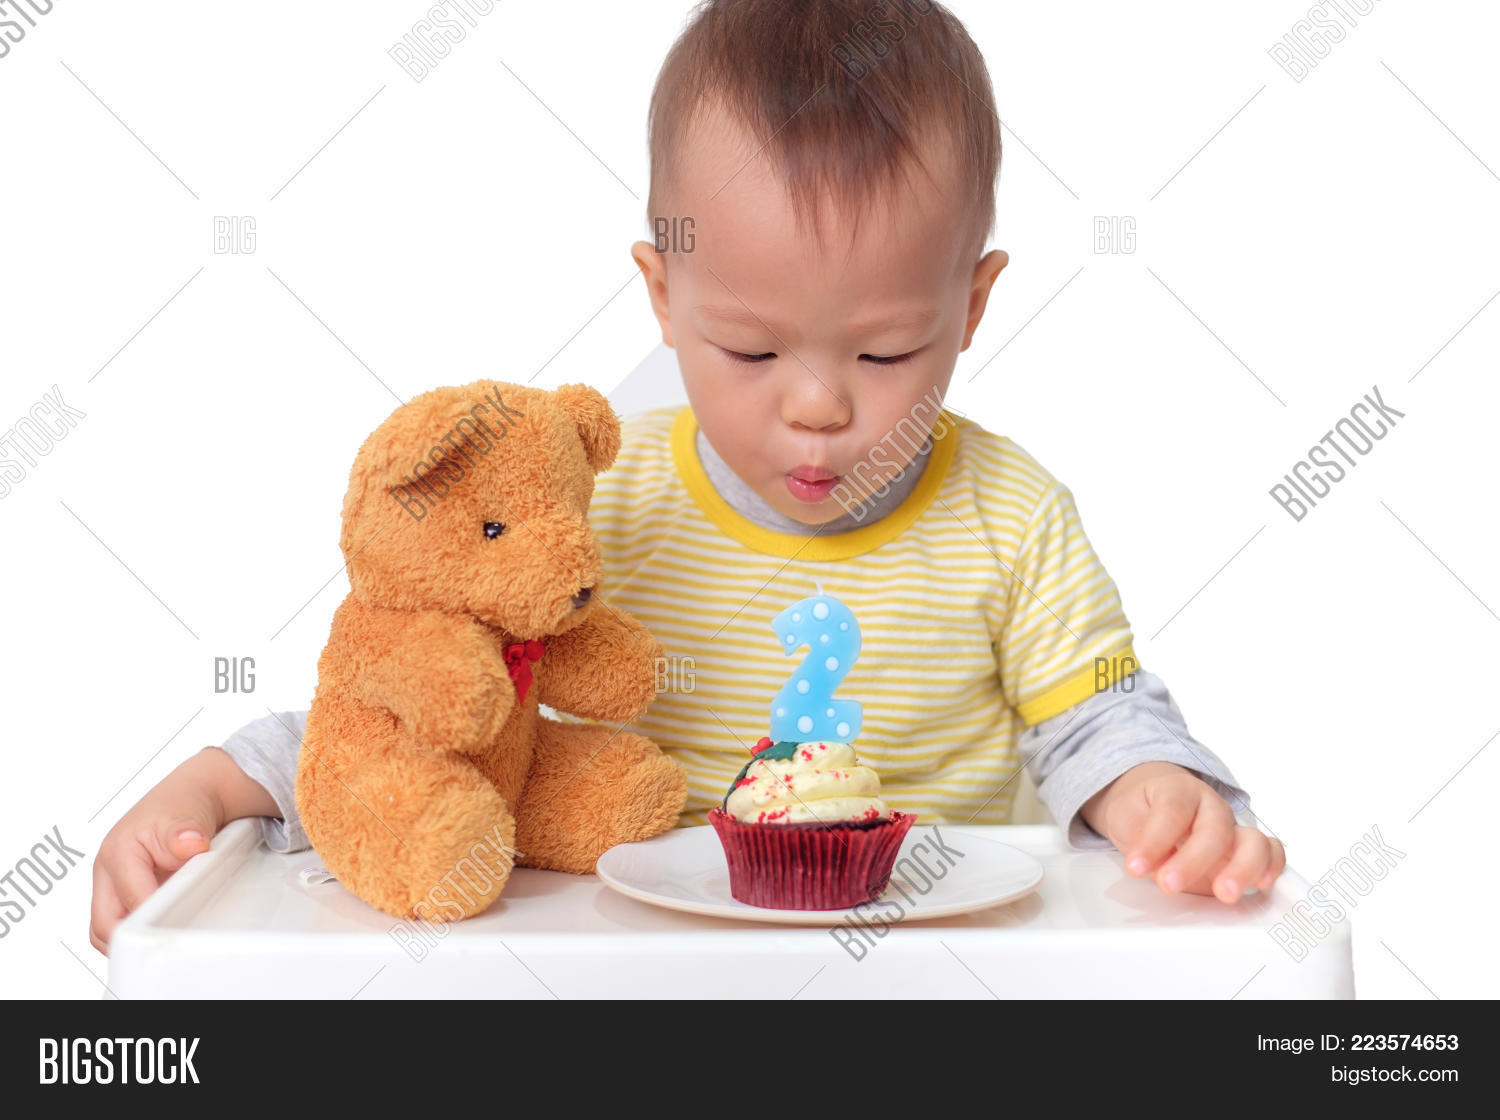 Toddler 2 Years Old Birthday Cute Little Asian 2 Image Photo Free Trial Bigstock